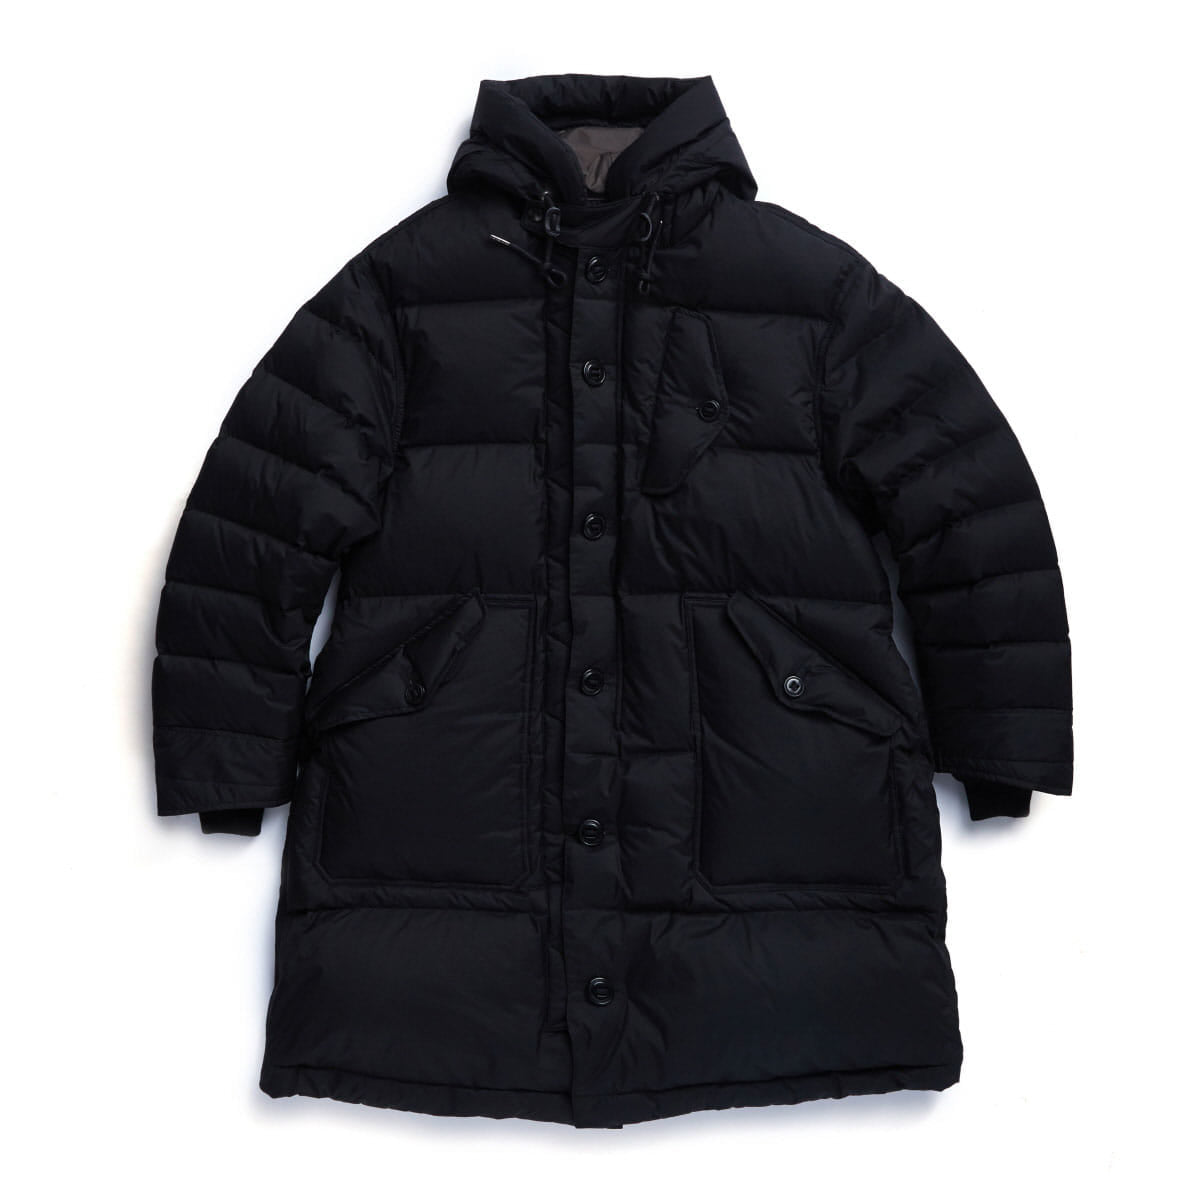 [EASTLOGUE] RAF COLD WEATHER DOWN PARKA 'BLACK SHIELD'